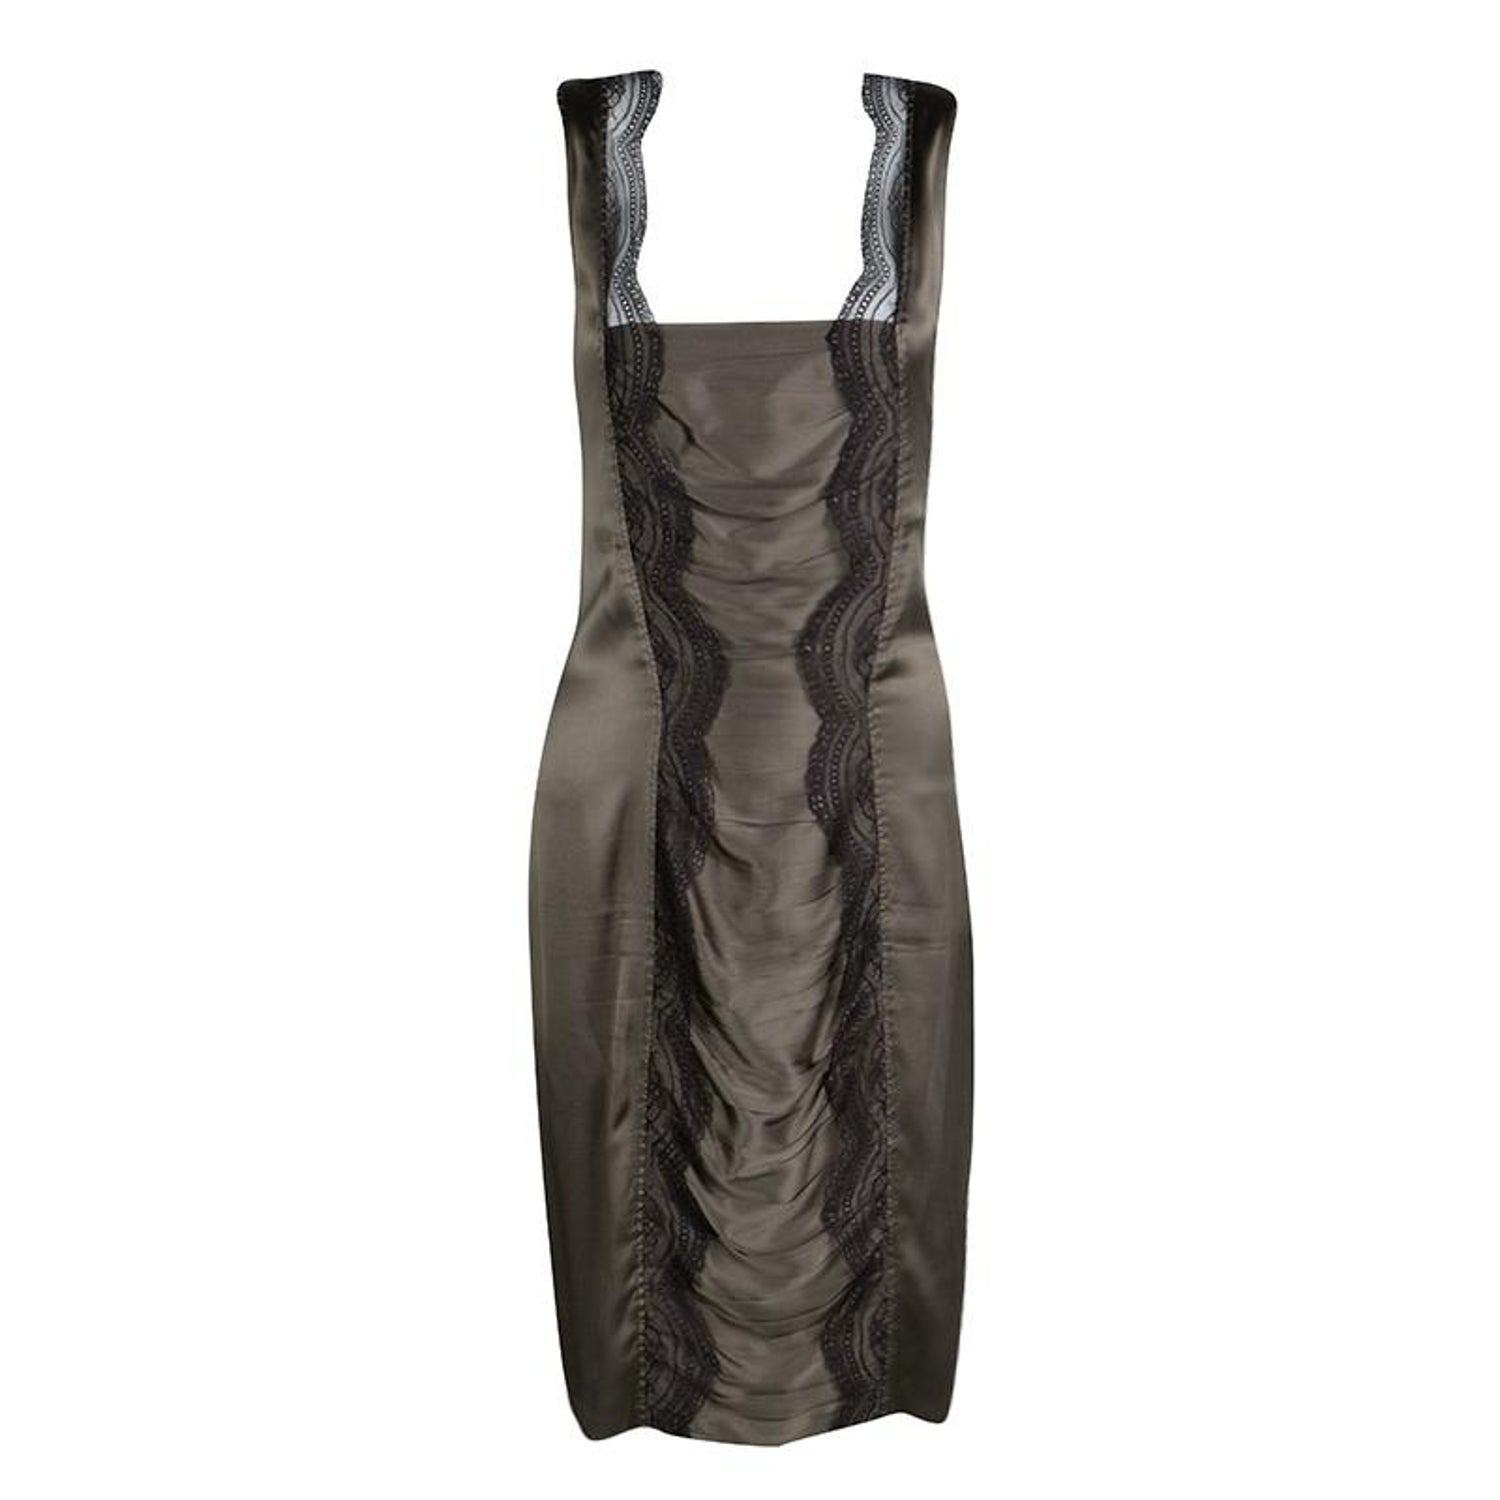 97be8b647c Roberto Cavalli Grey Scallop Lace Panel Detail Satin Ruched Sleeveless Dress  M For Sale at 1stdibs